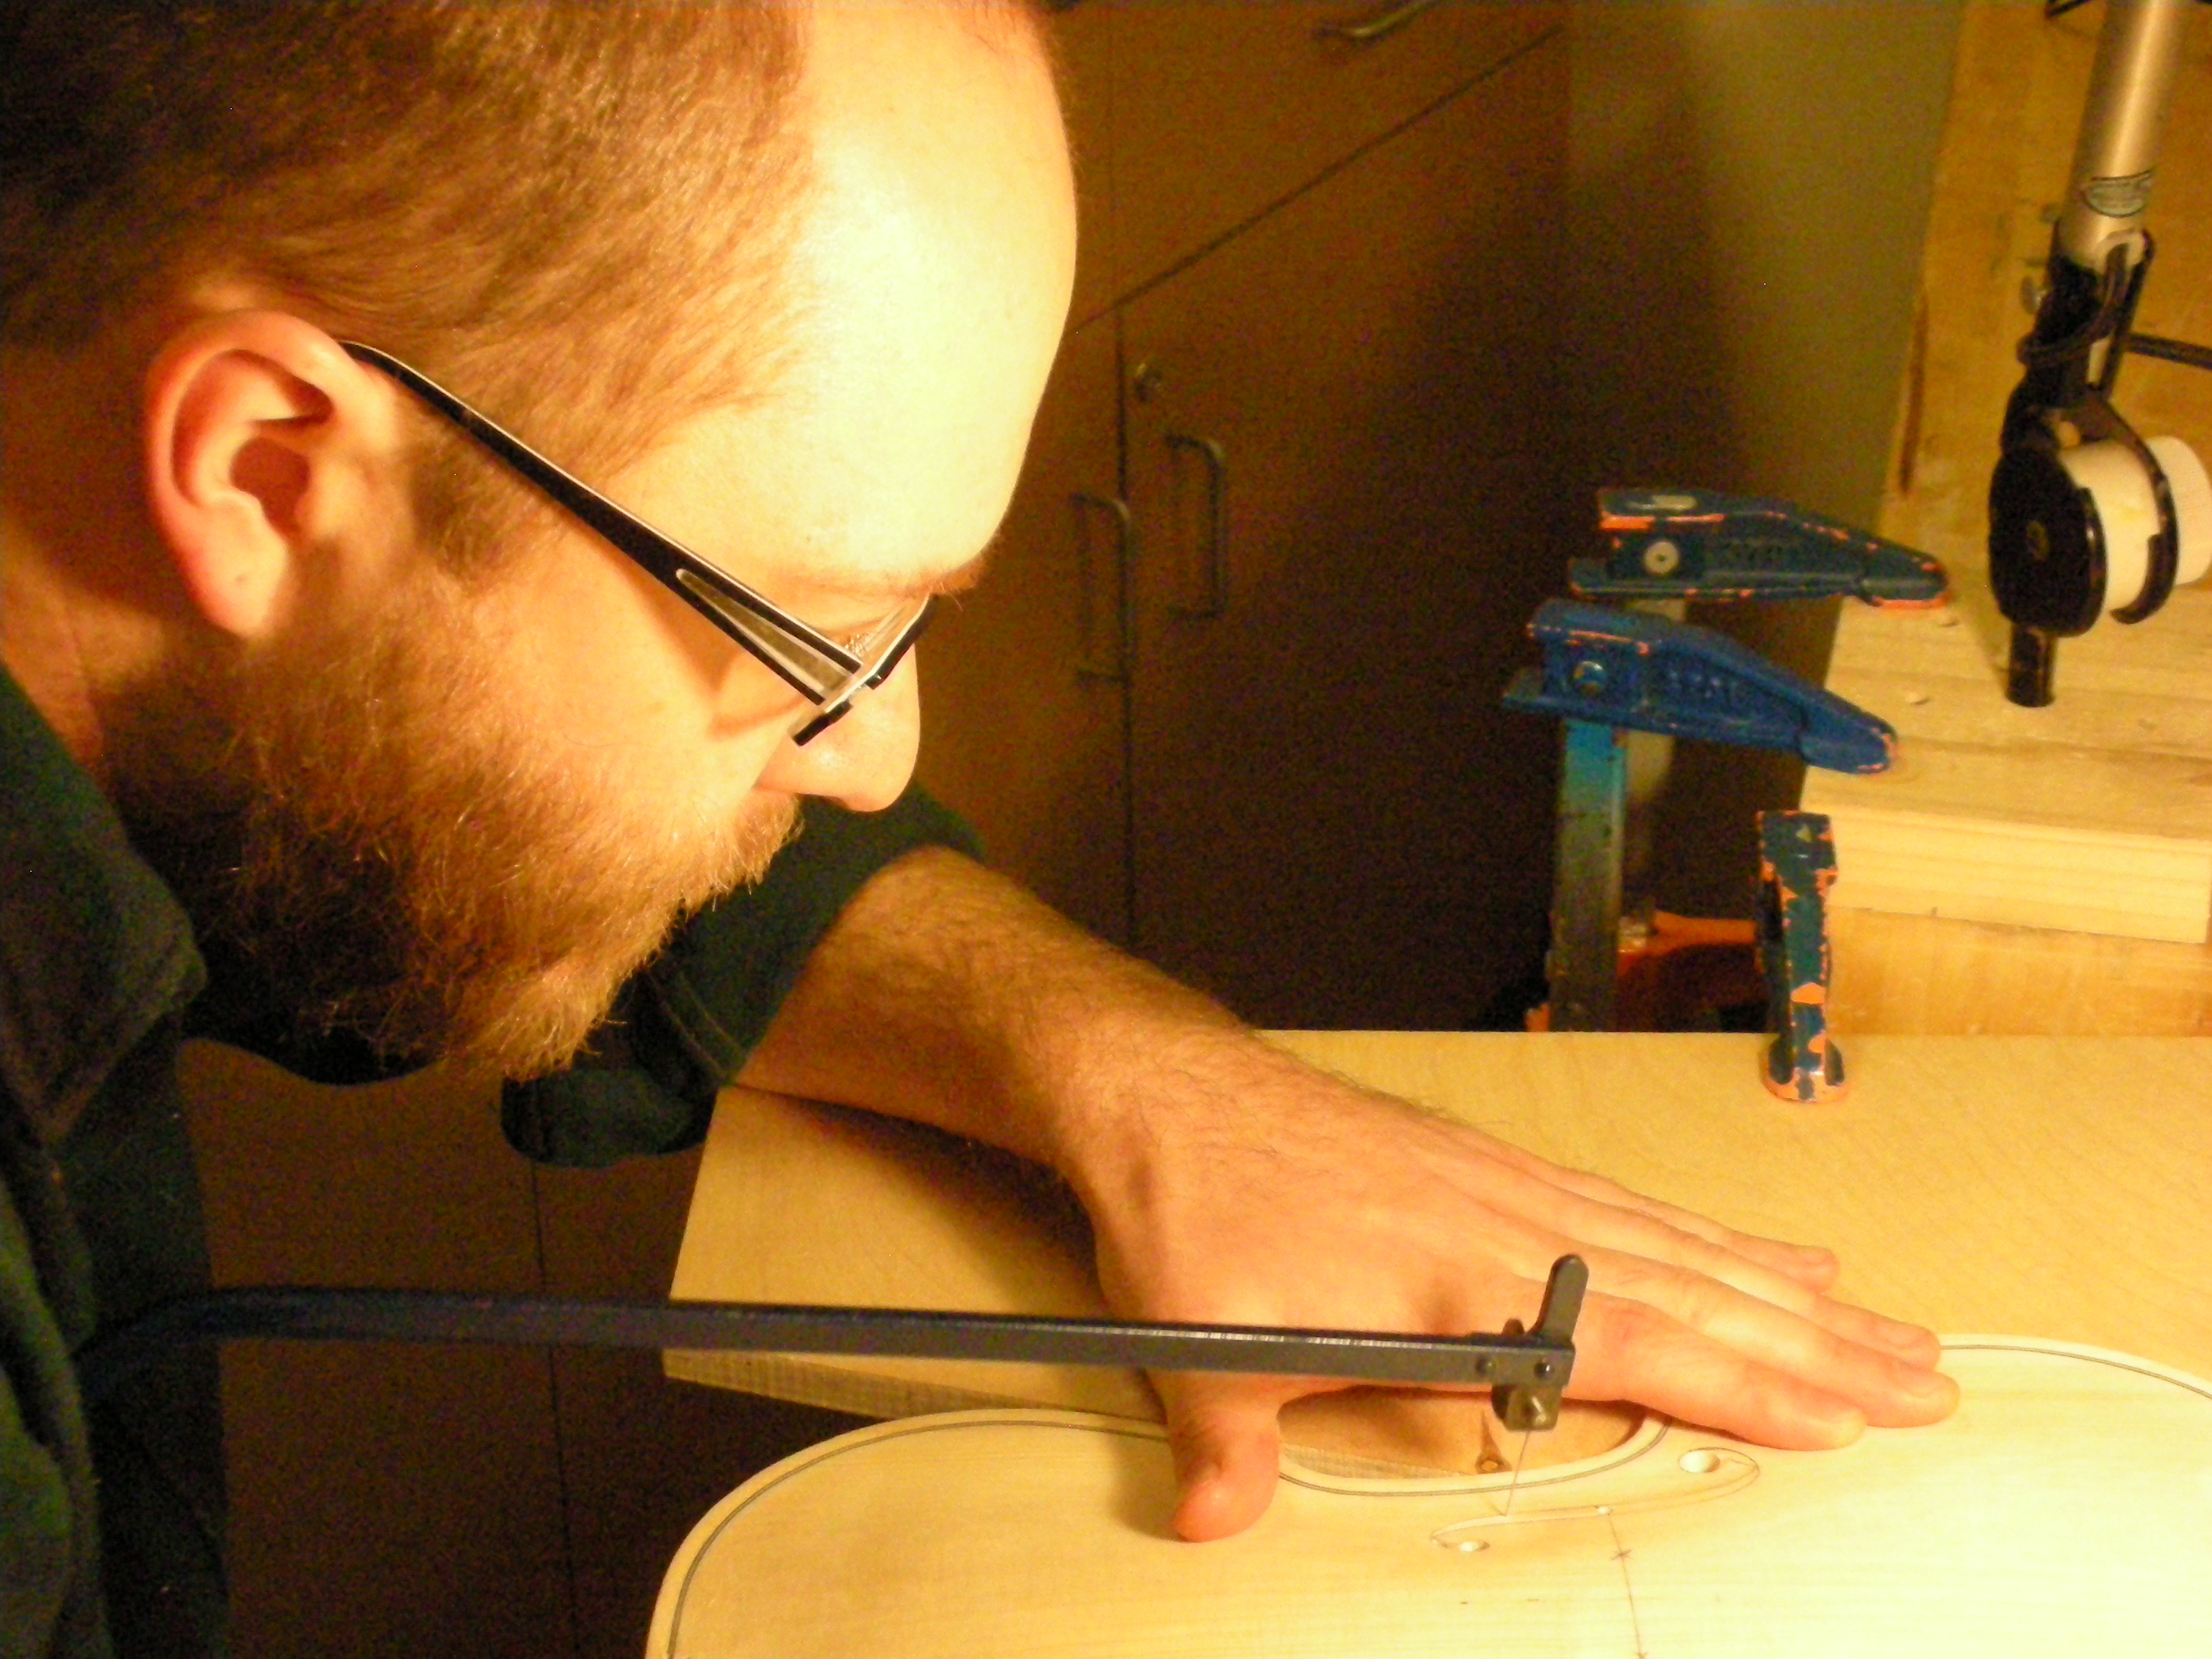 luthier cutting f-holes